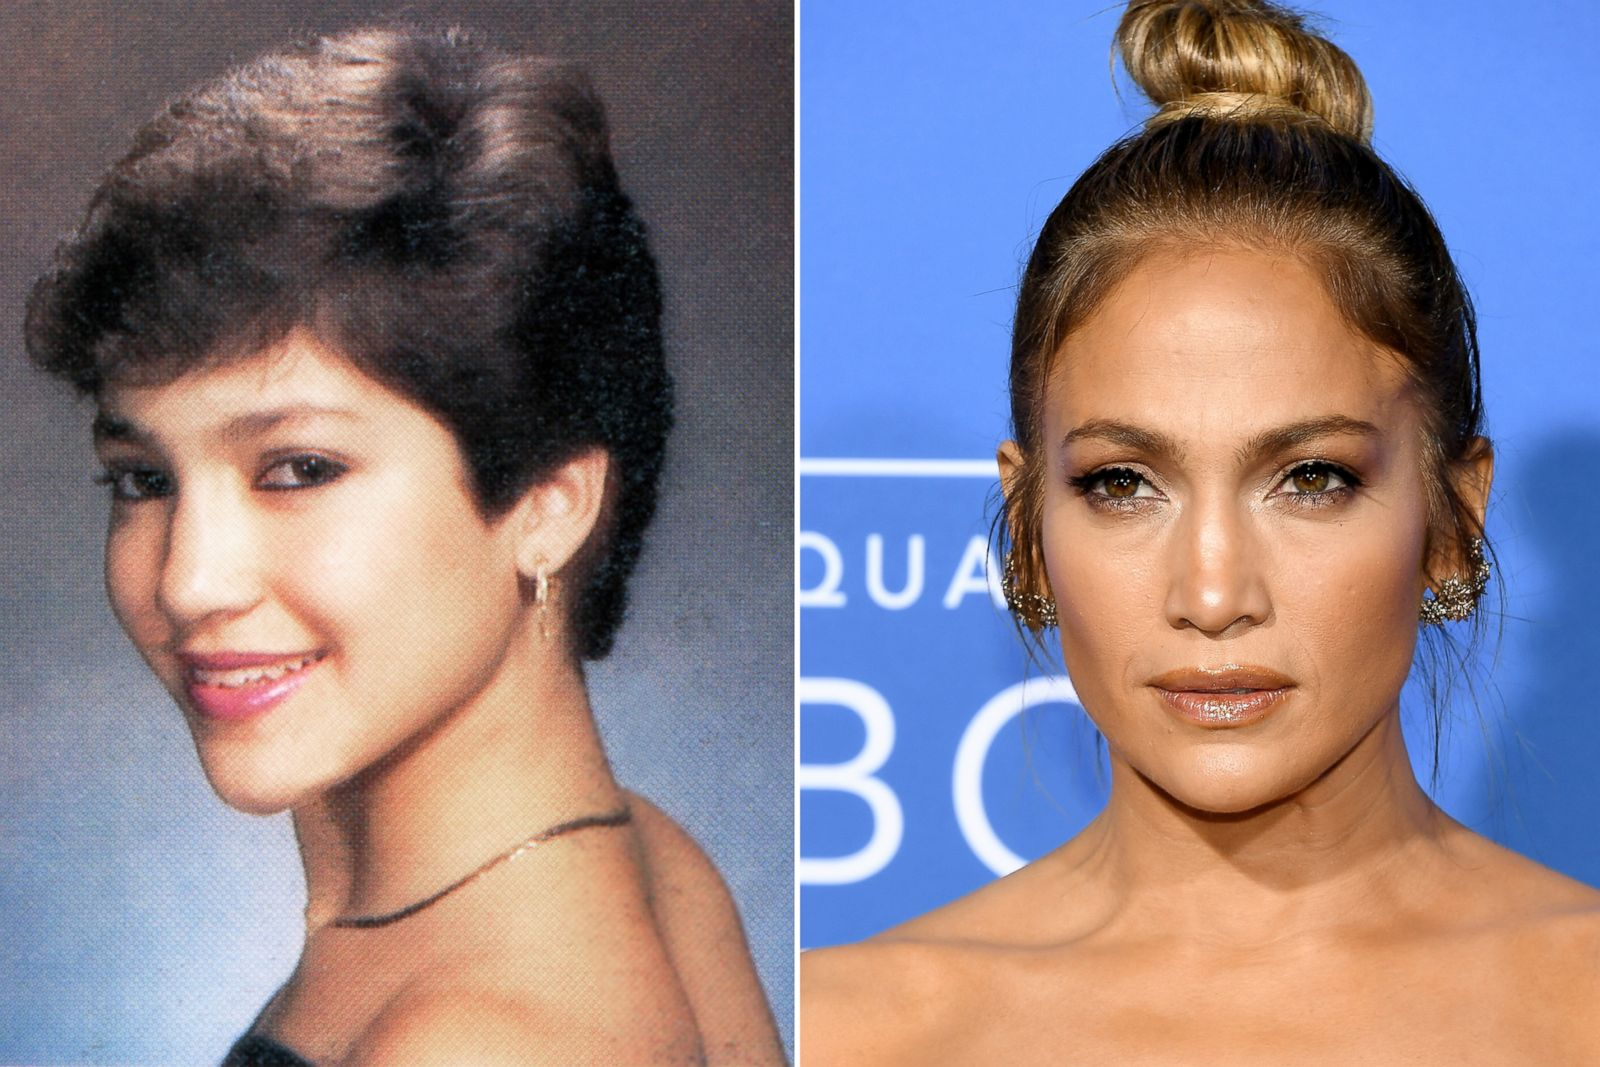 ' ' from the web at 'https://s.abcnews.com/images/Entertainment/jennifer-lopez-ht-gty-ml-170721_3x2_1600.jpg'